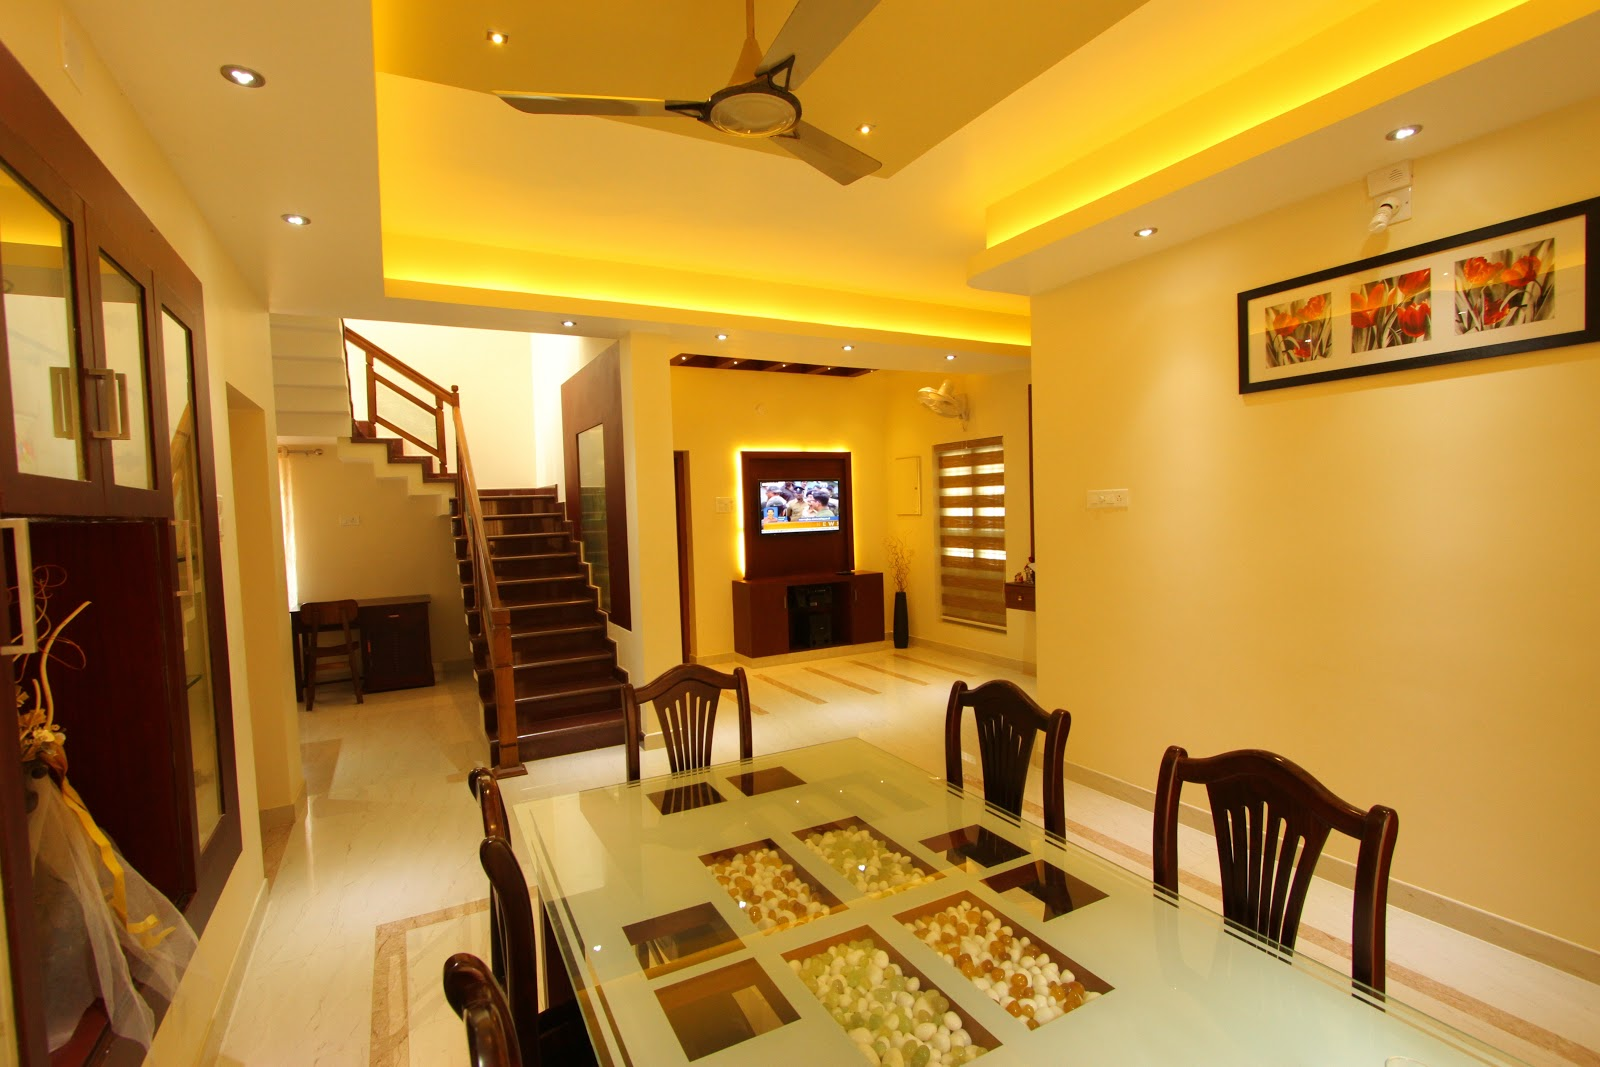 Shilpakala interiors award winning home interior design - Home interior designs ...